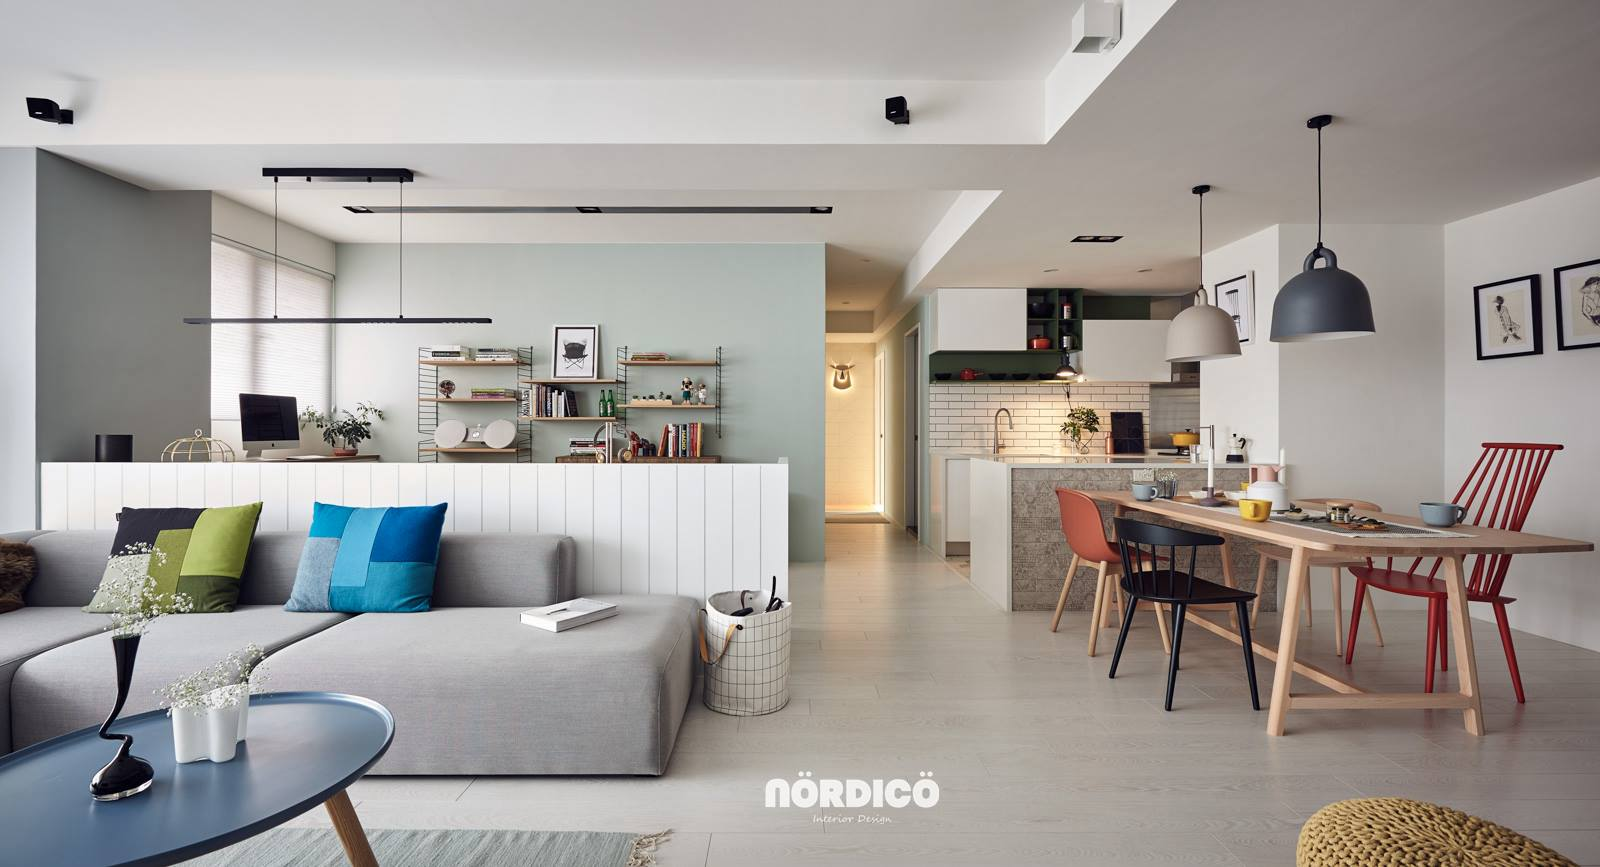 Colorful Modern Nordic Interior Inspiration - Nordic decor inspiration in two colorful homes